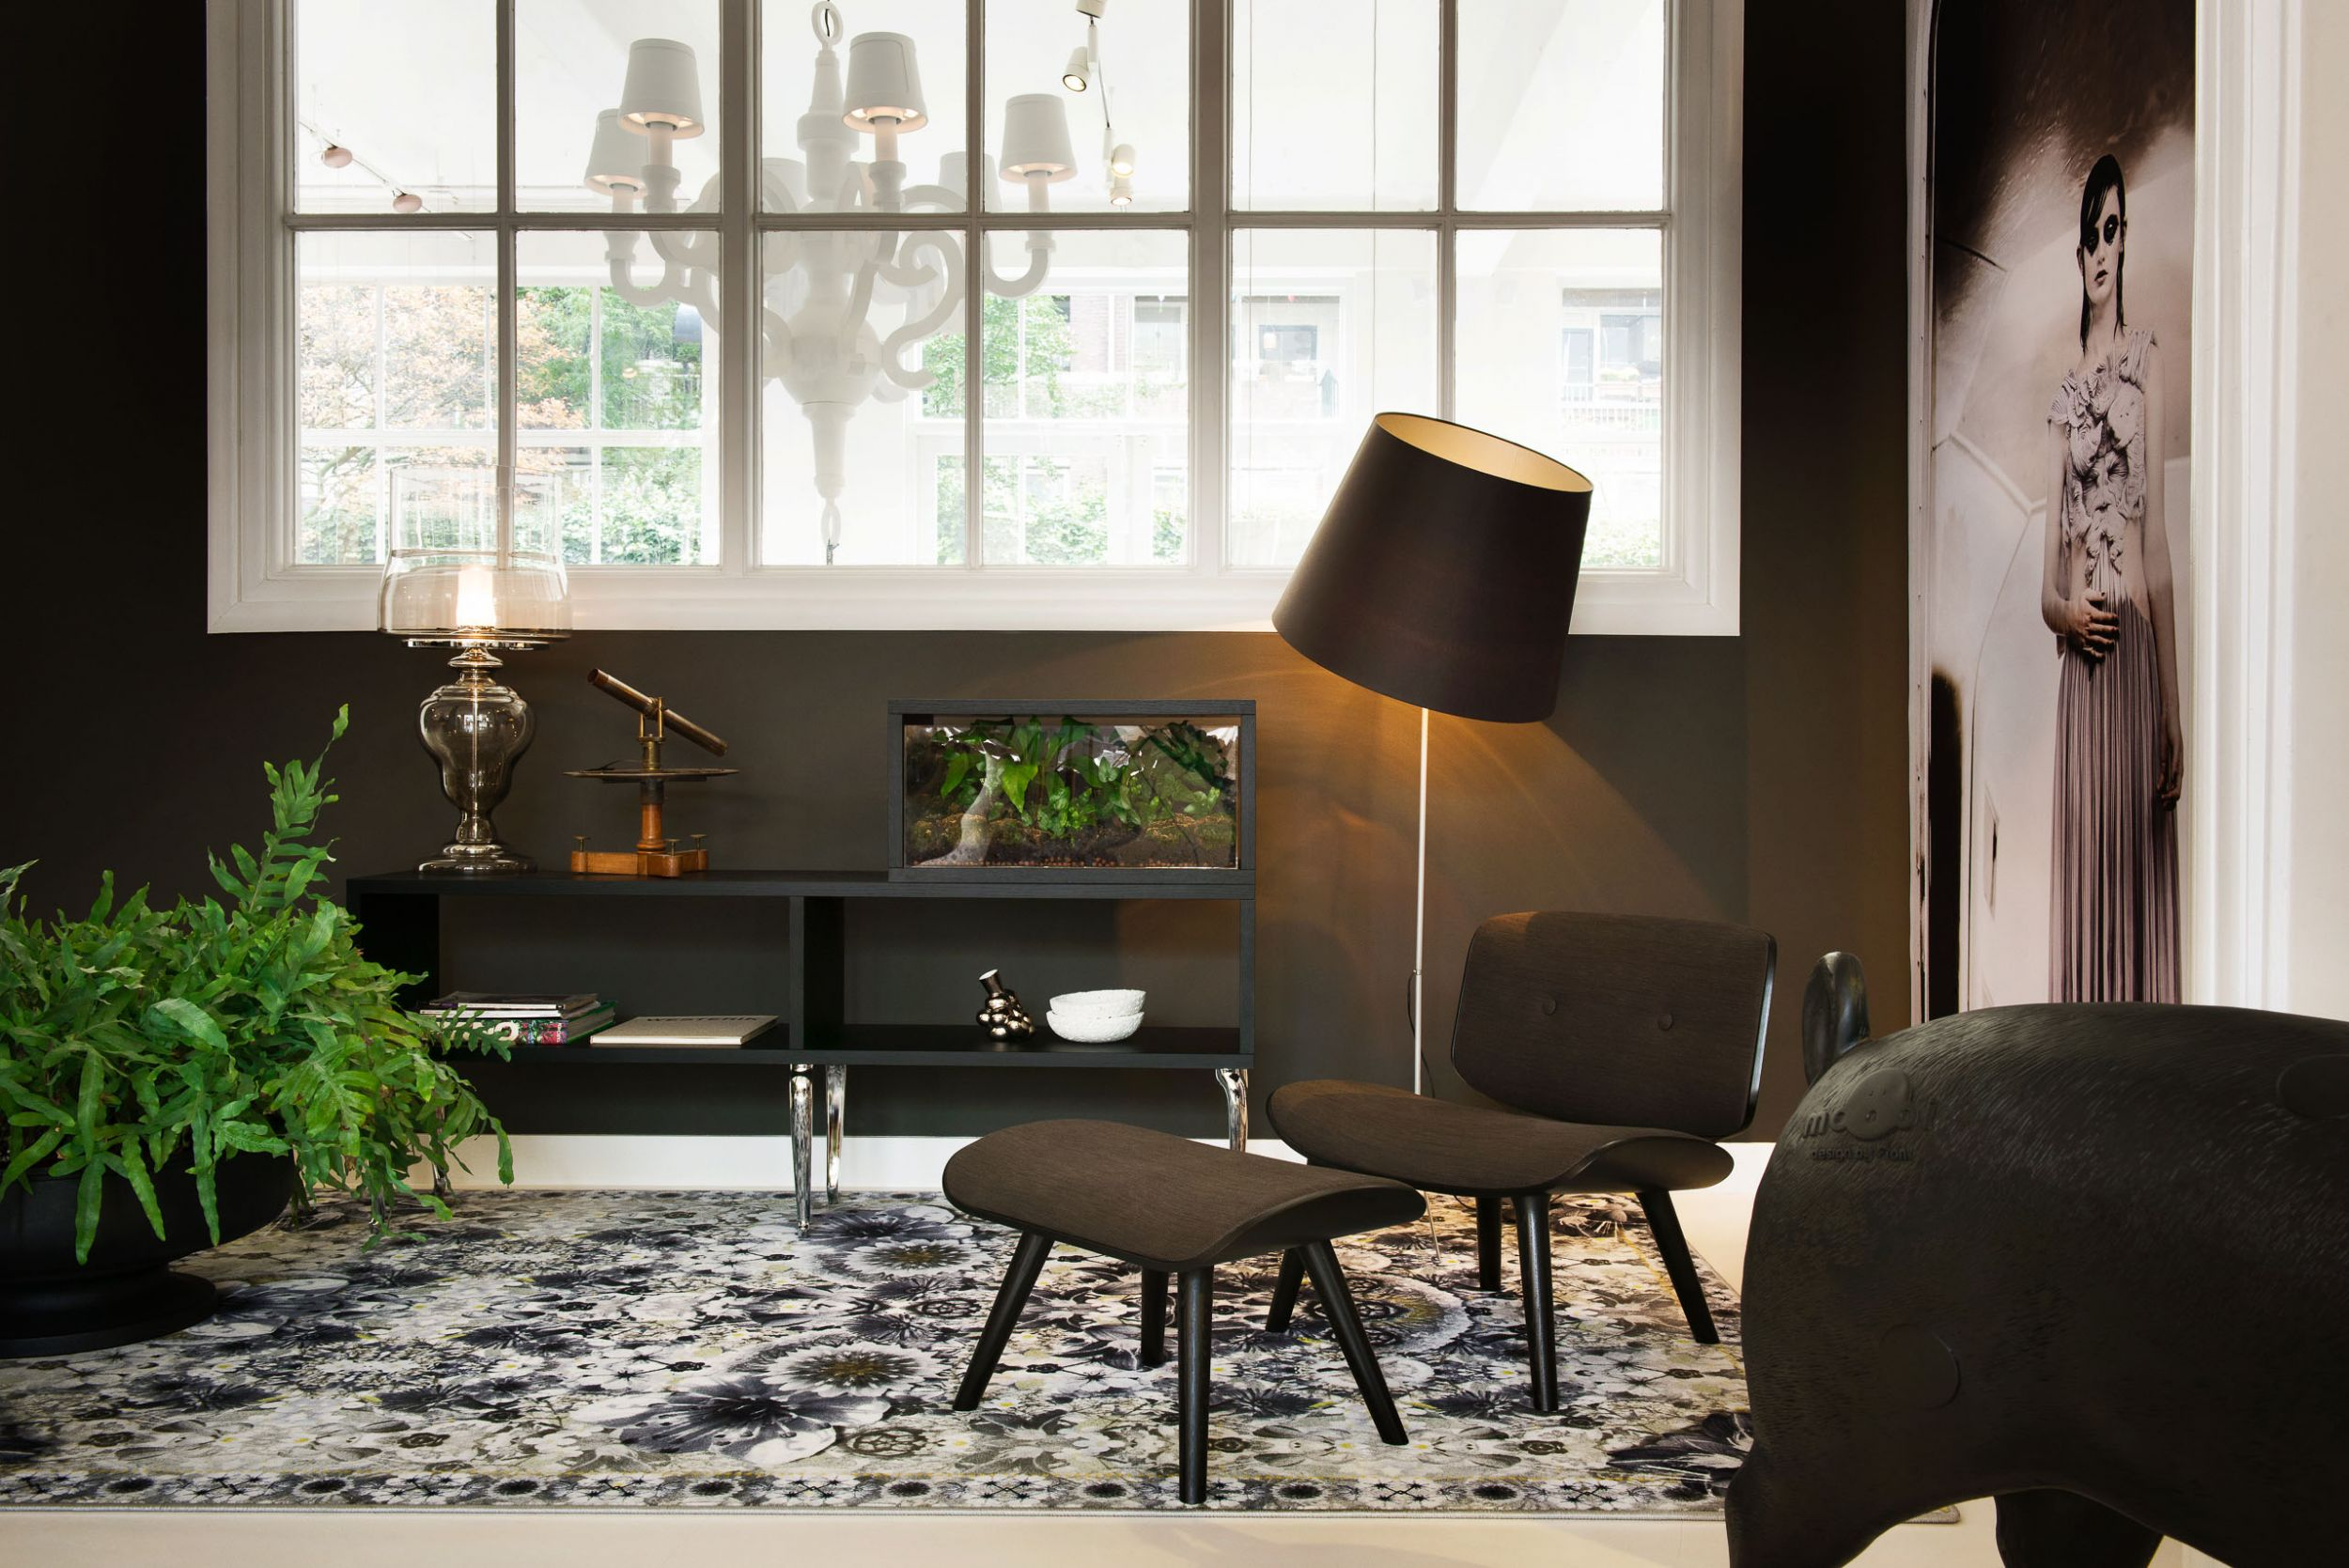 Double Shade Floor Lamp In Black Or White By Marcel Wanders For Moooi